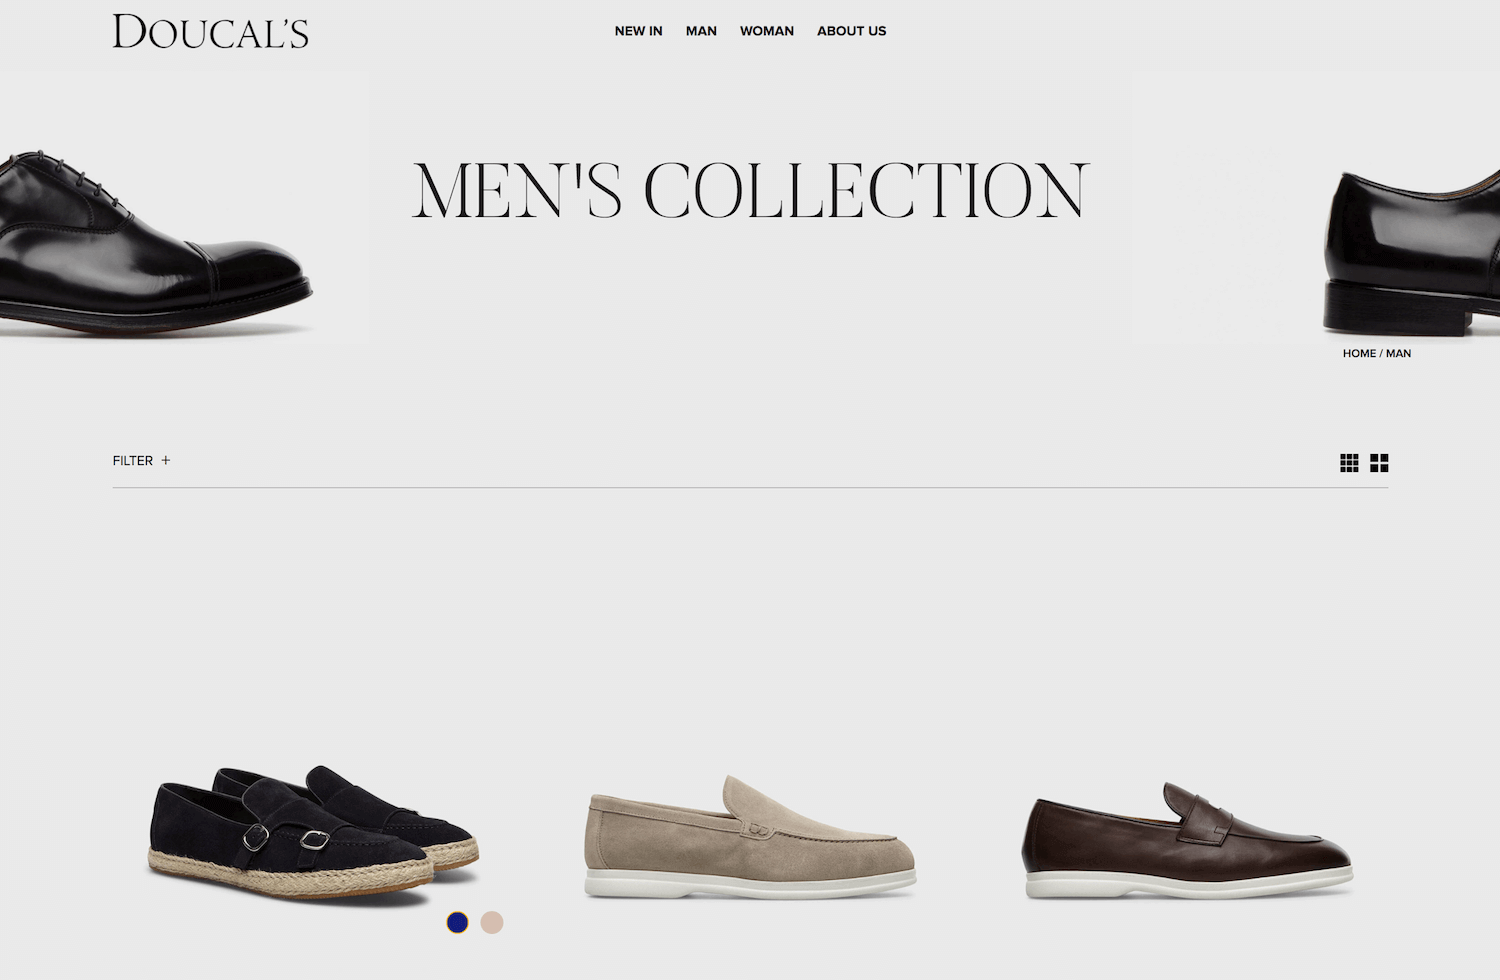 Doucal shoes shop page by WooCommerce